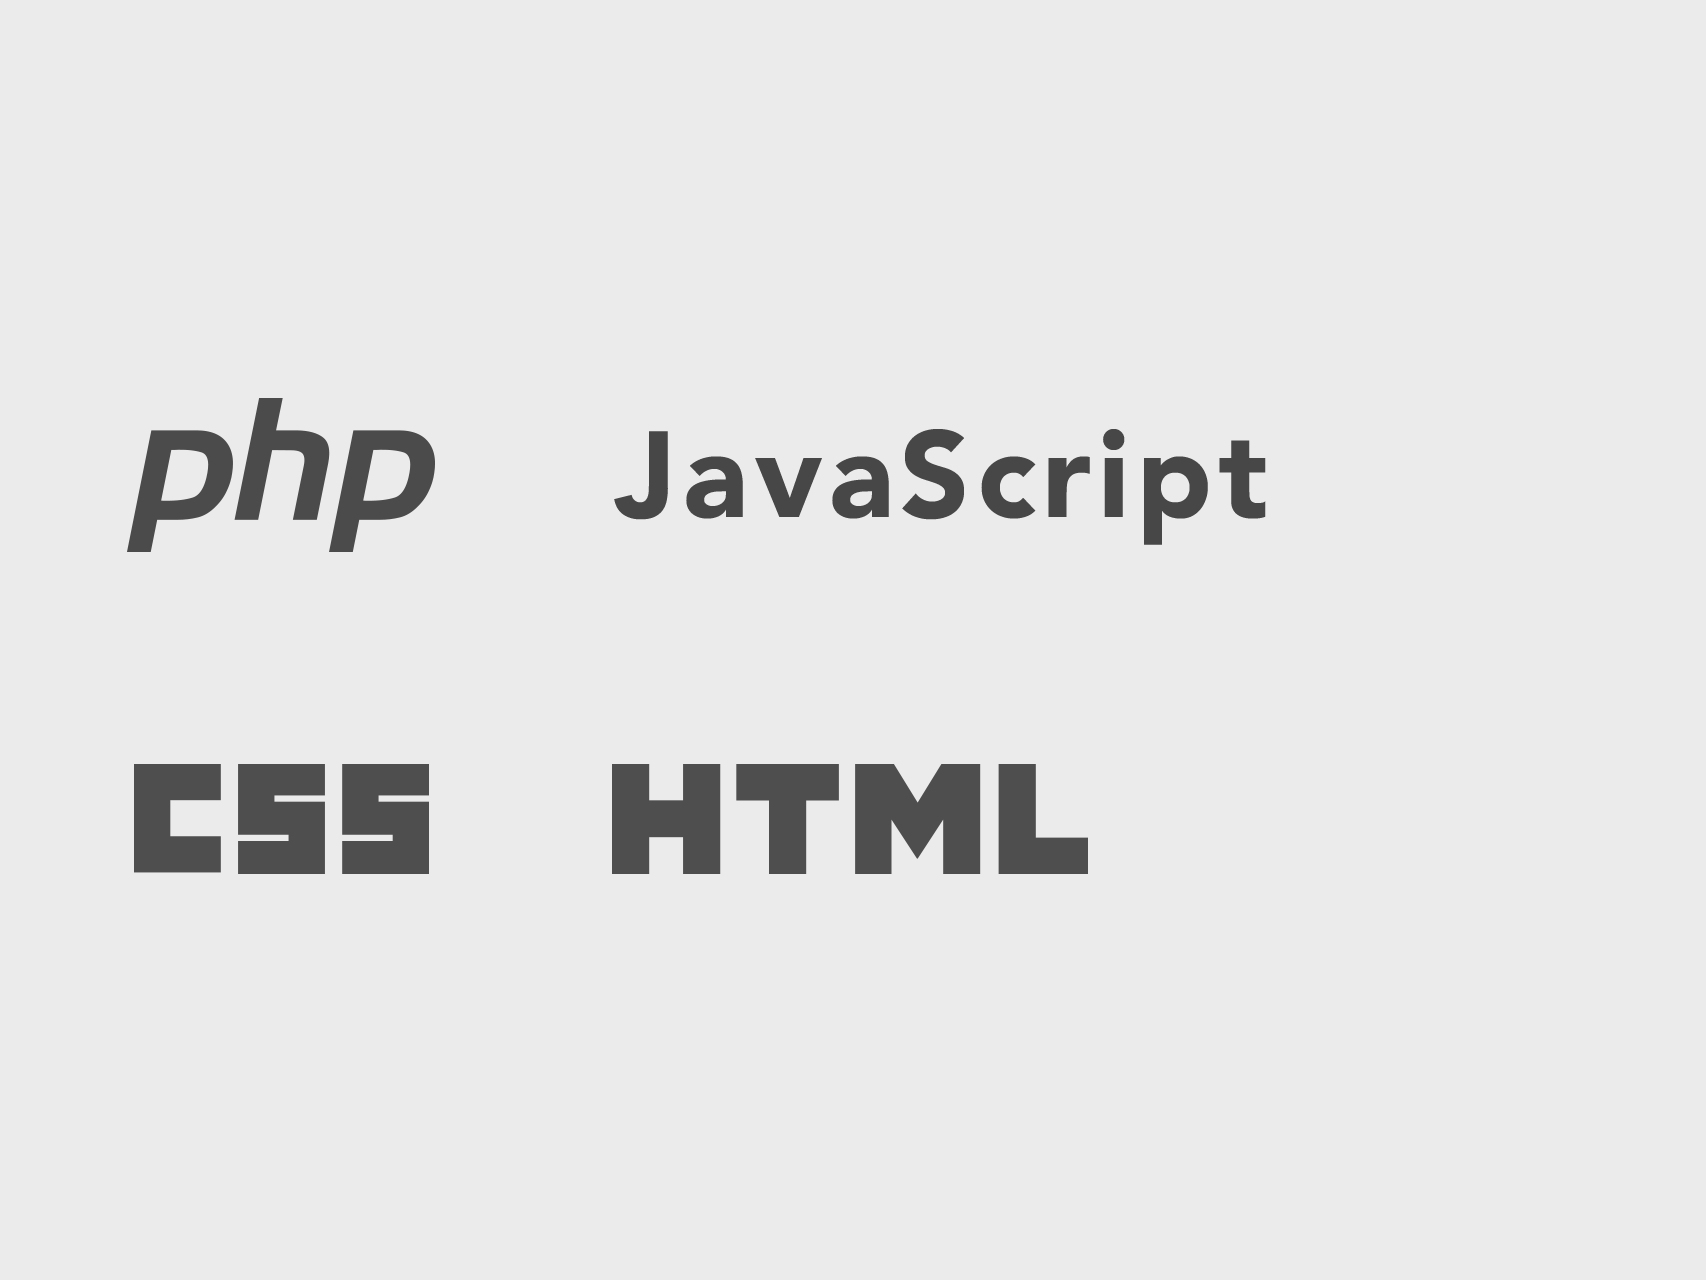 Webentwicklung: php, javascript, css, html